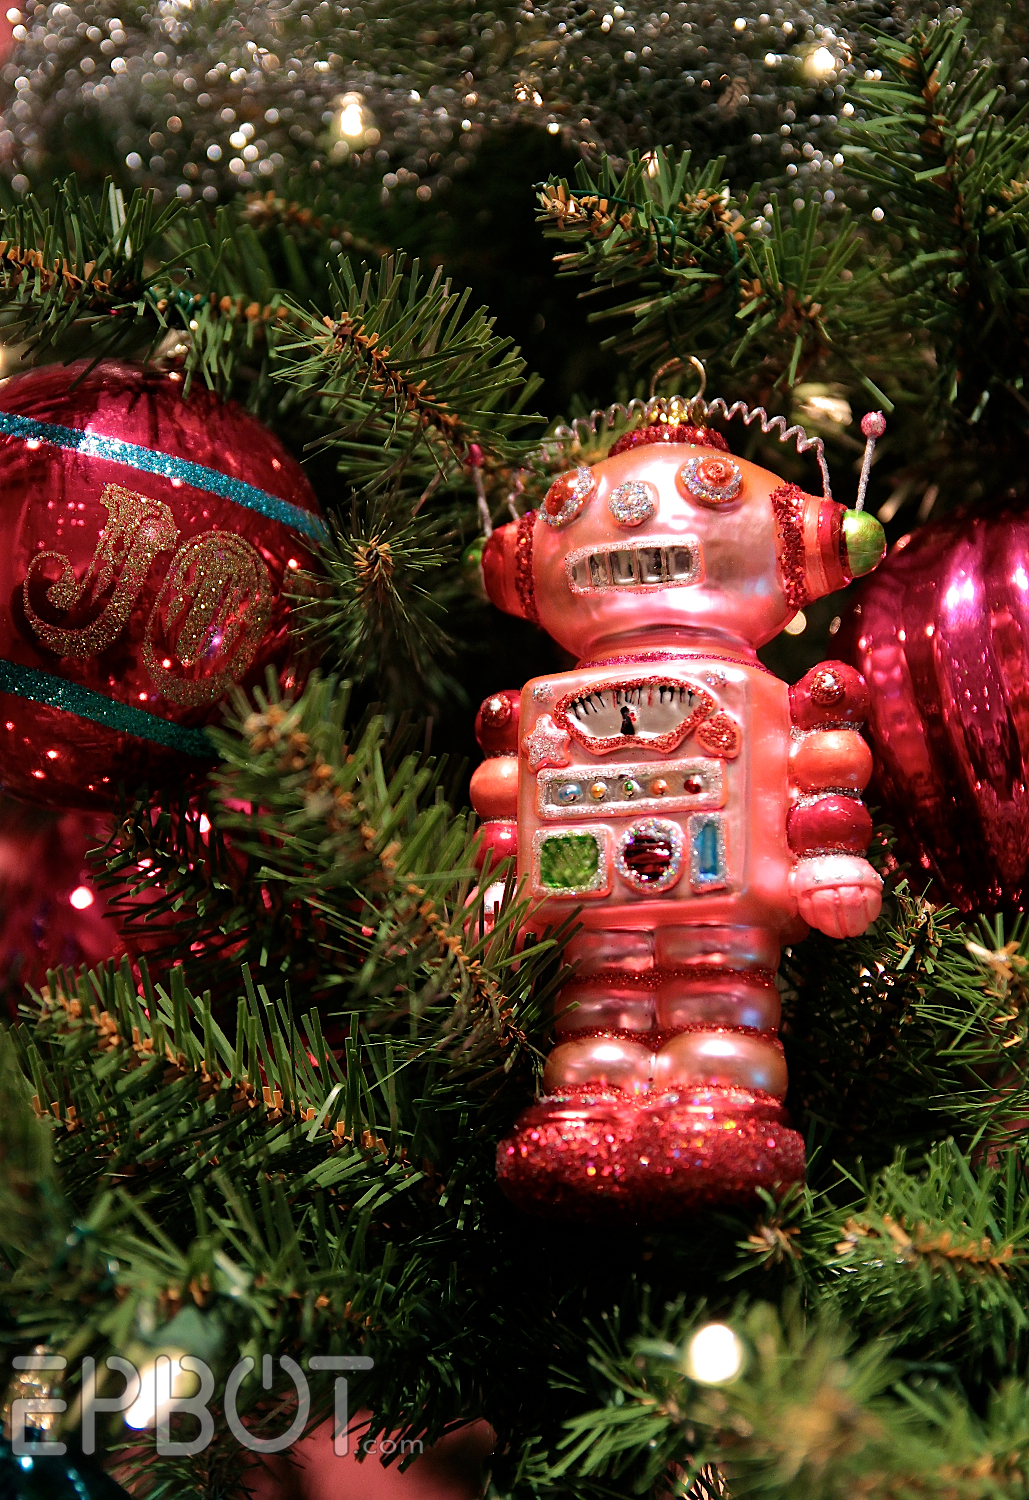 Themed christmas ornaments - Yep They Glittered Up A Telescope For This Retro Robot Space Themed Tree Isn T It Fun This One Had Some Of My Favorite Individual Ornaments Too